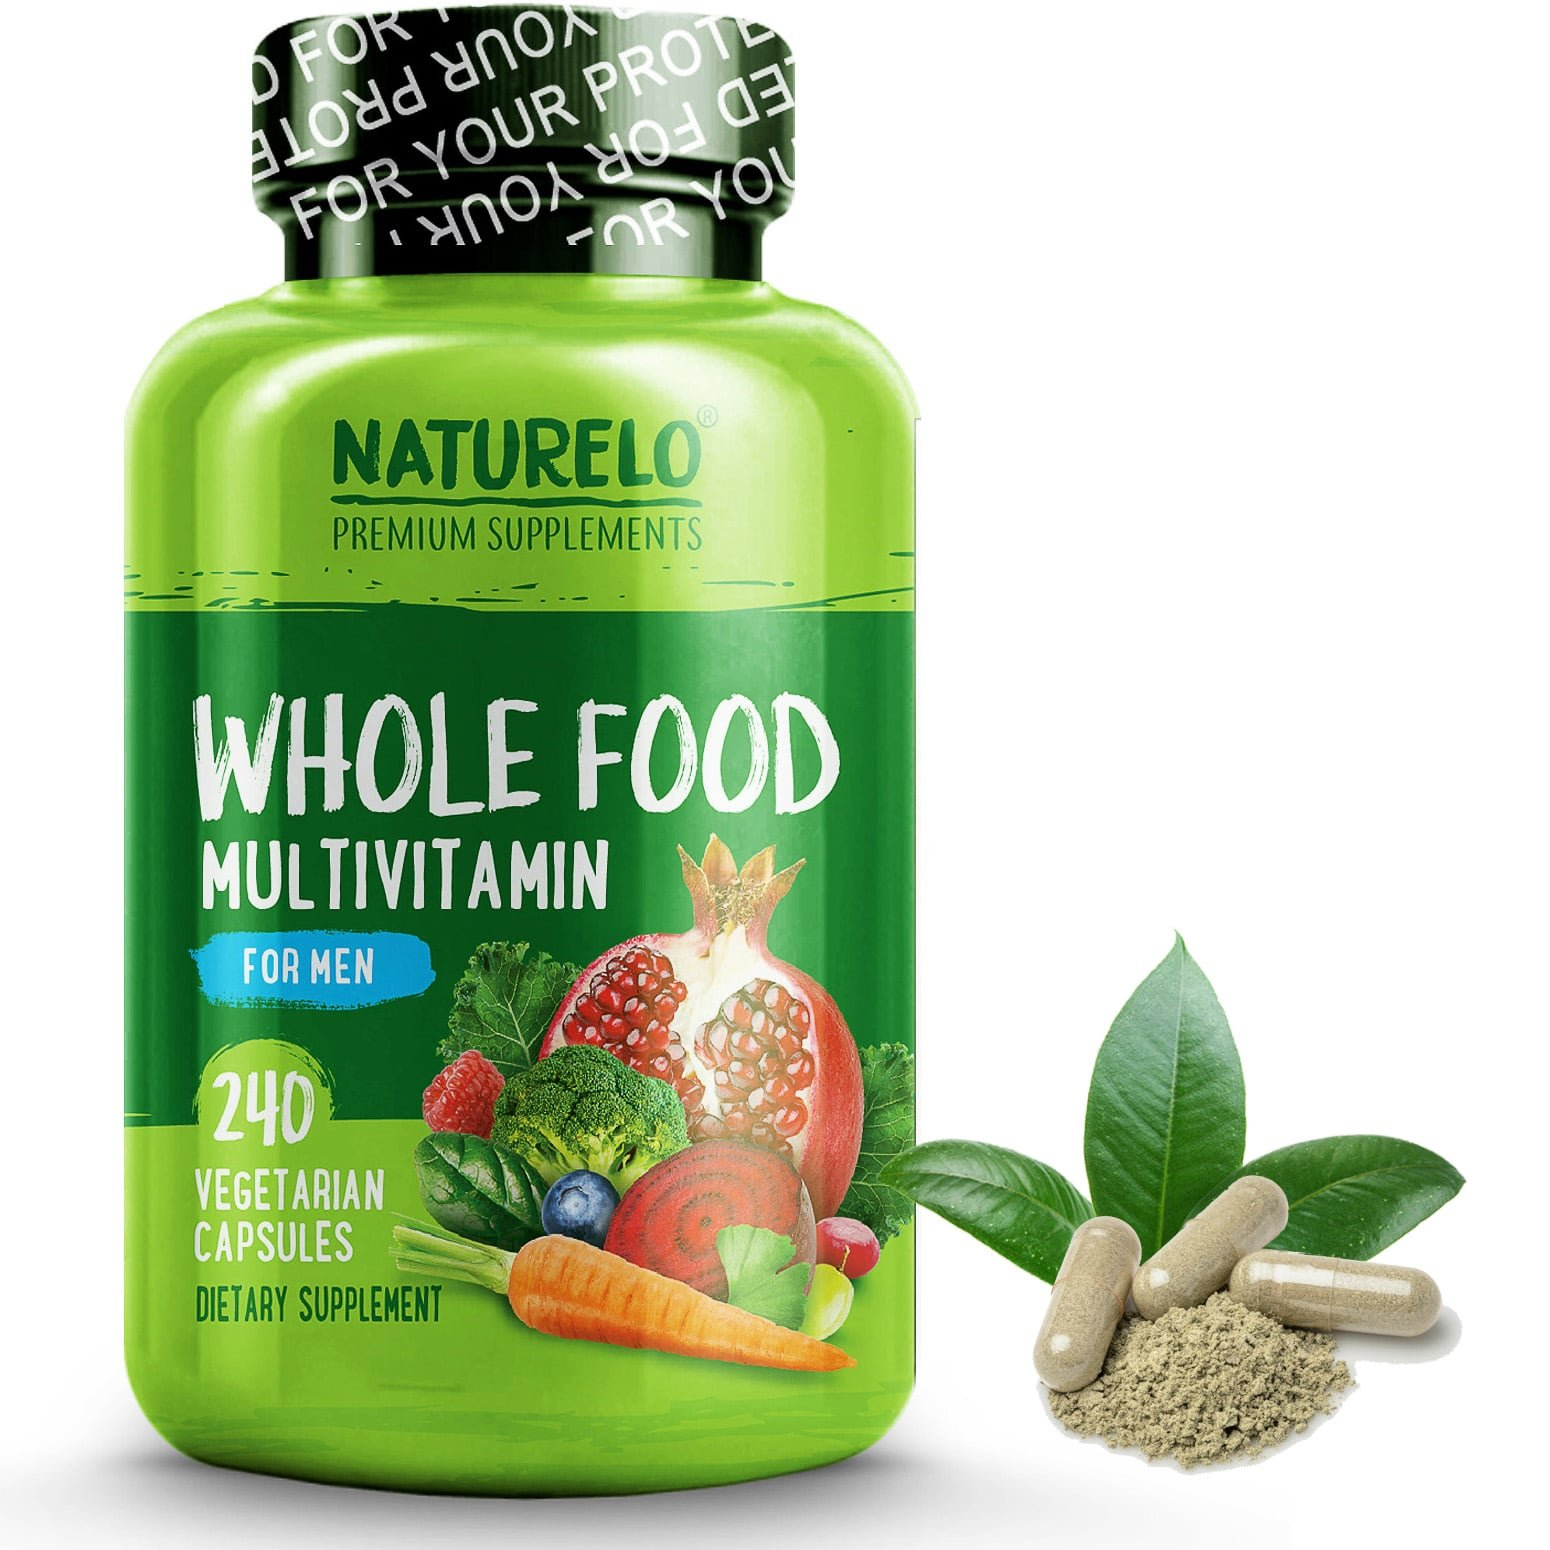 Natural Multivitamin Food